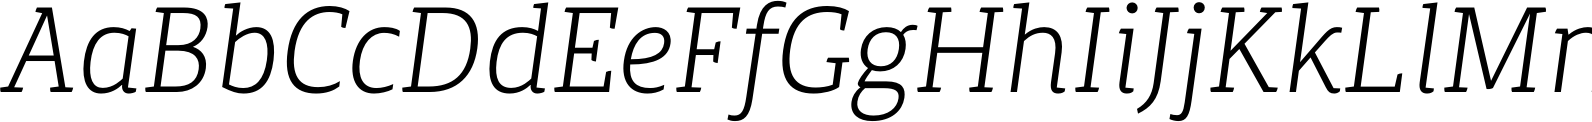 Canberra FY Light Italic Font